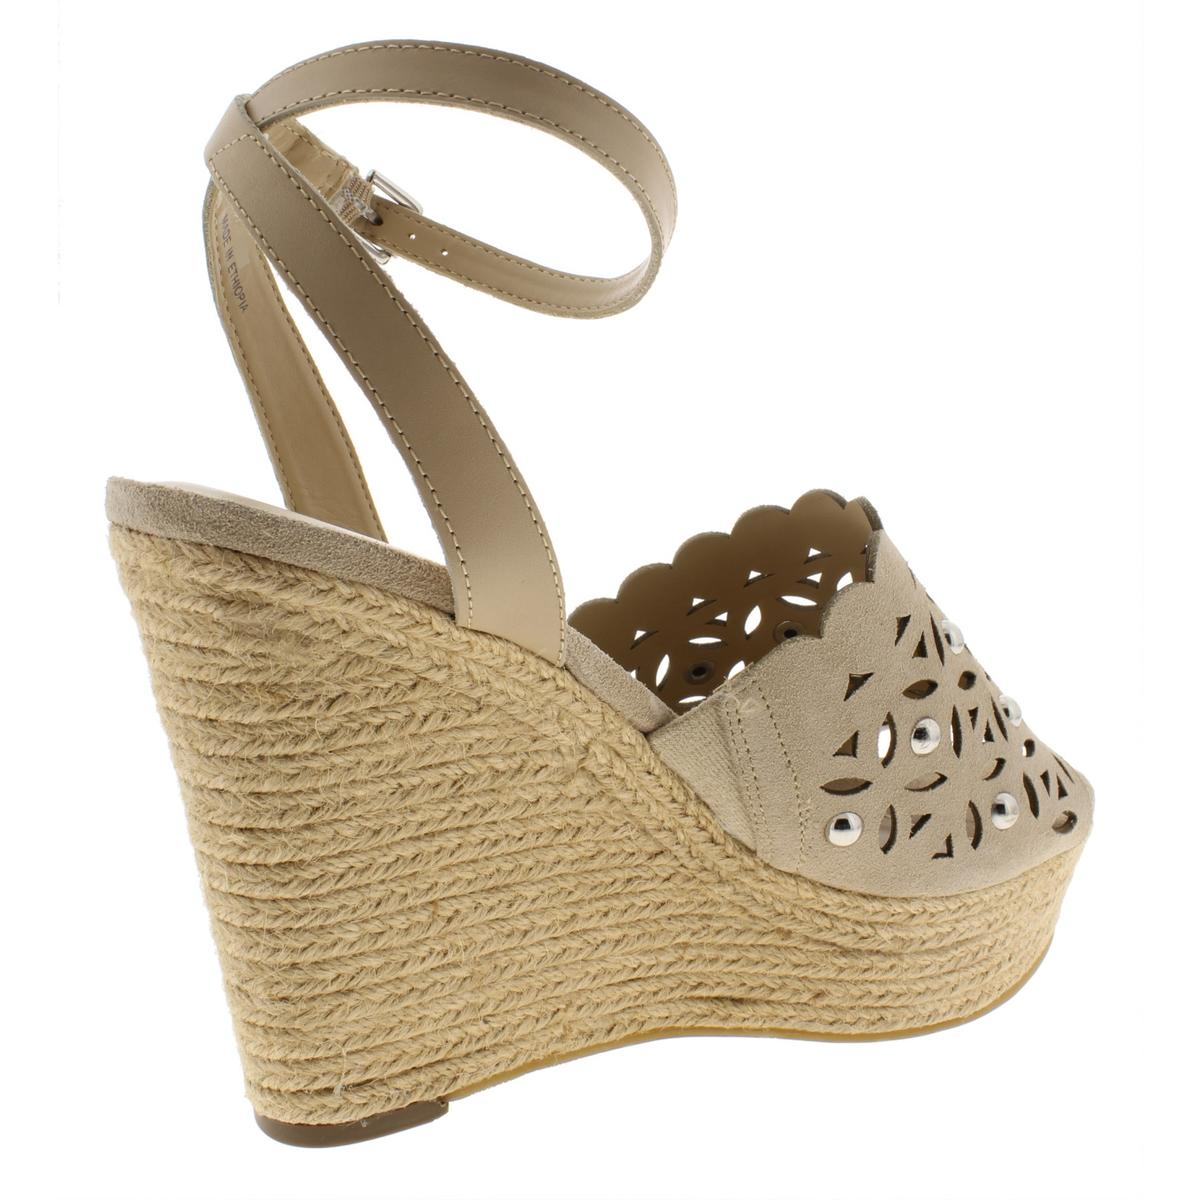 Marc-Fisher-Womens-Hata-Suede-Wedges-Embellished-Espadrilles-Shoes-BHFO-6455 thumbnail 9